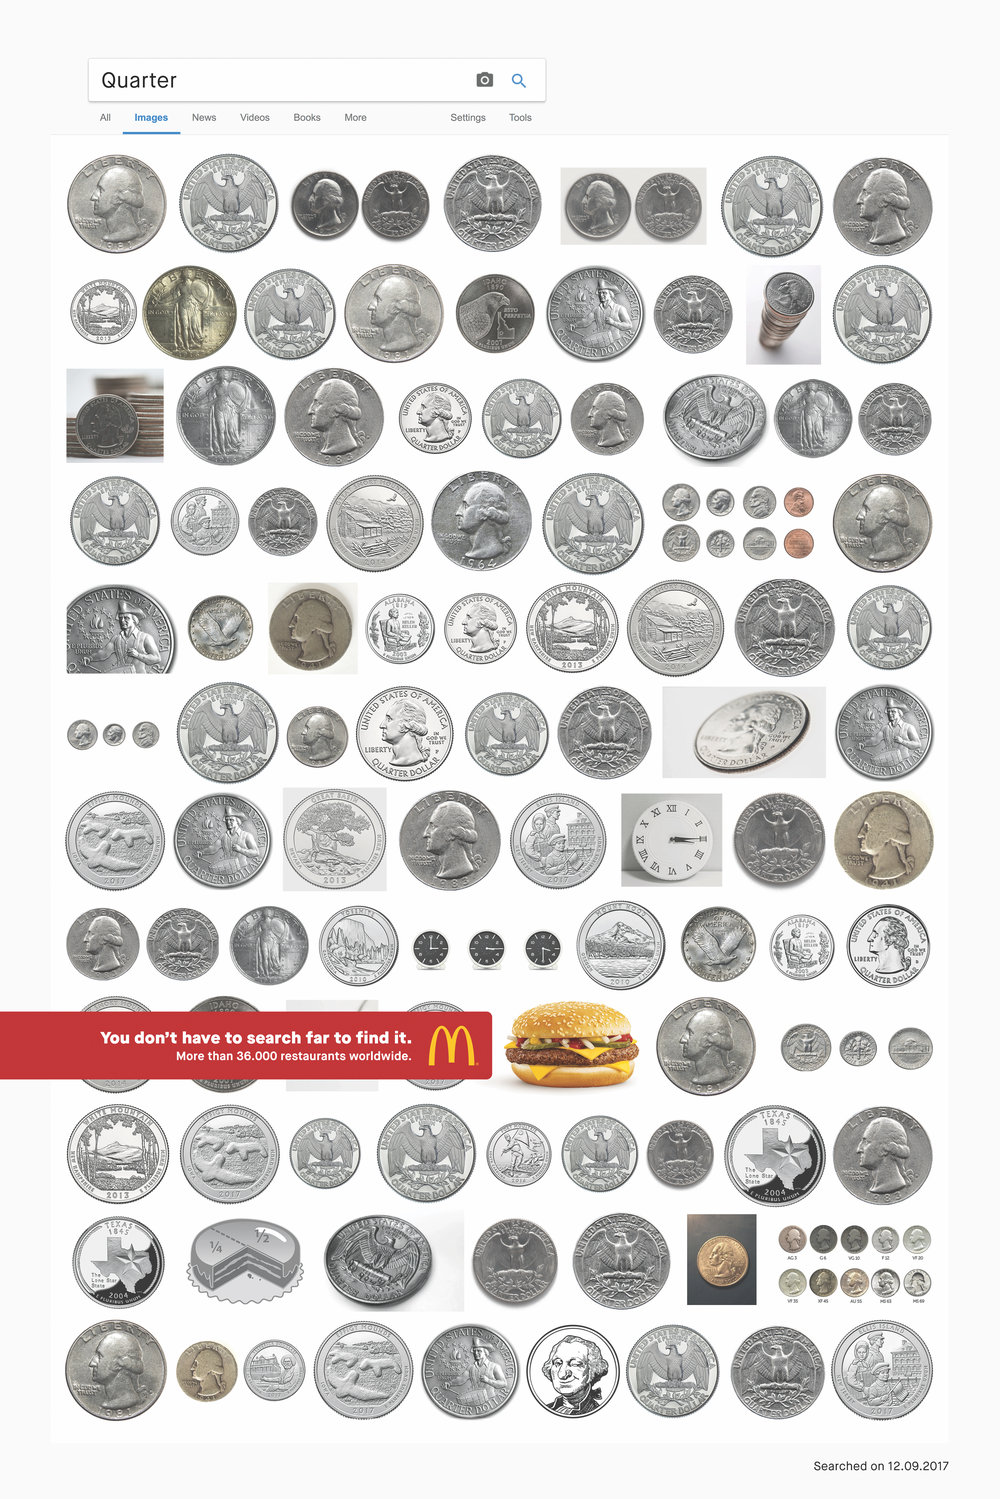 4.McDonalds-Search_Quarter.jpg